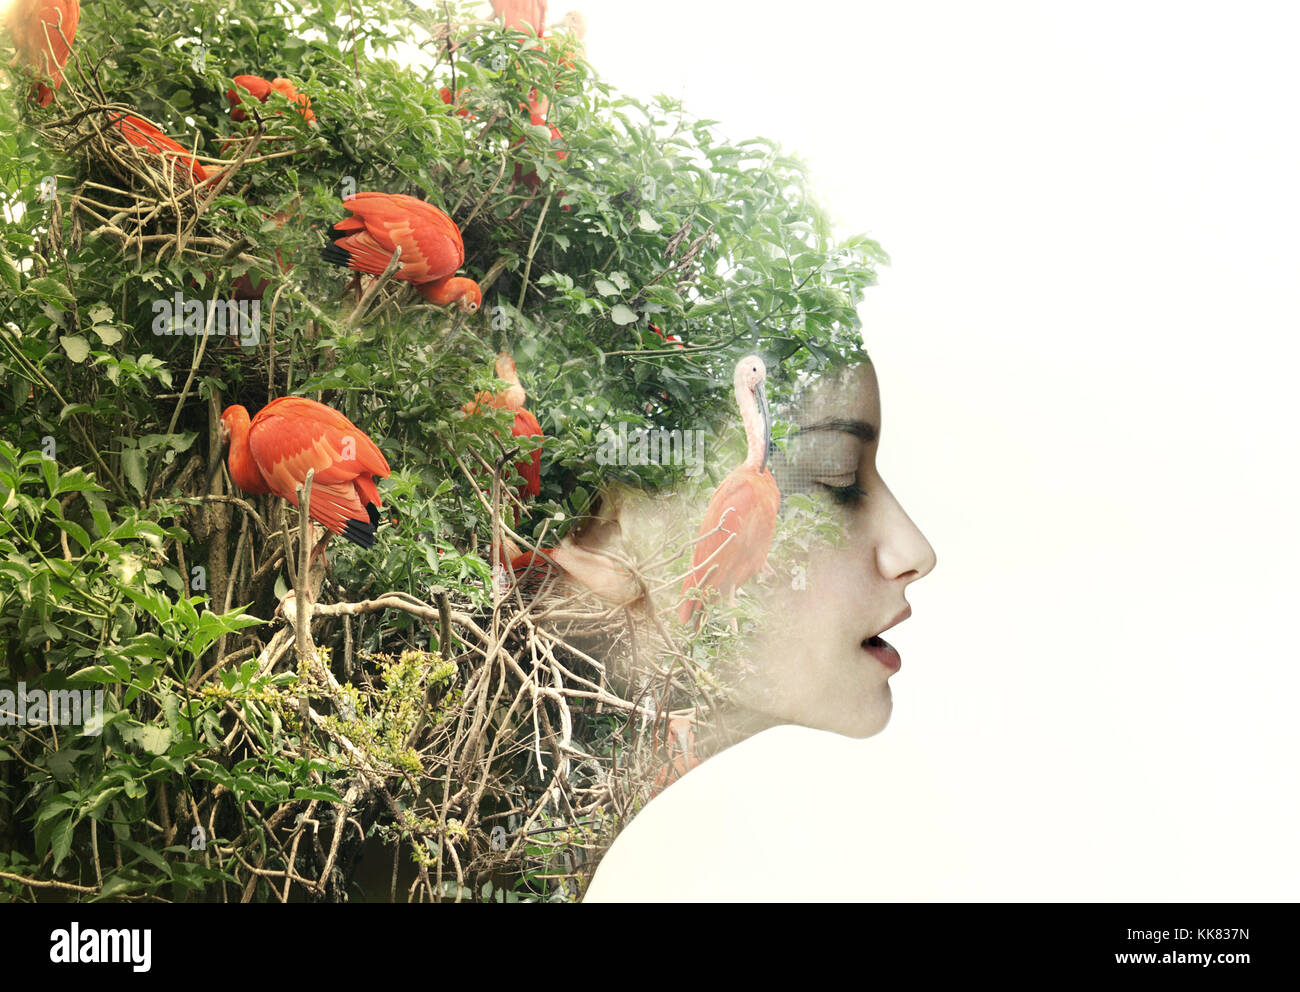 Artistic surreal female profile in a metamorphosis with nature - Stock Image